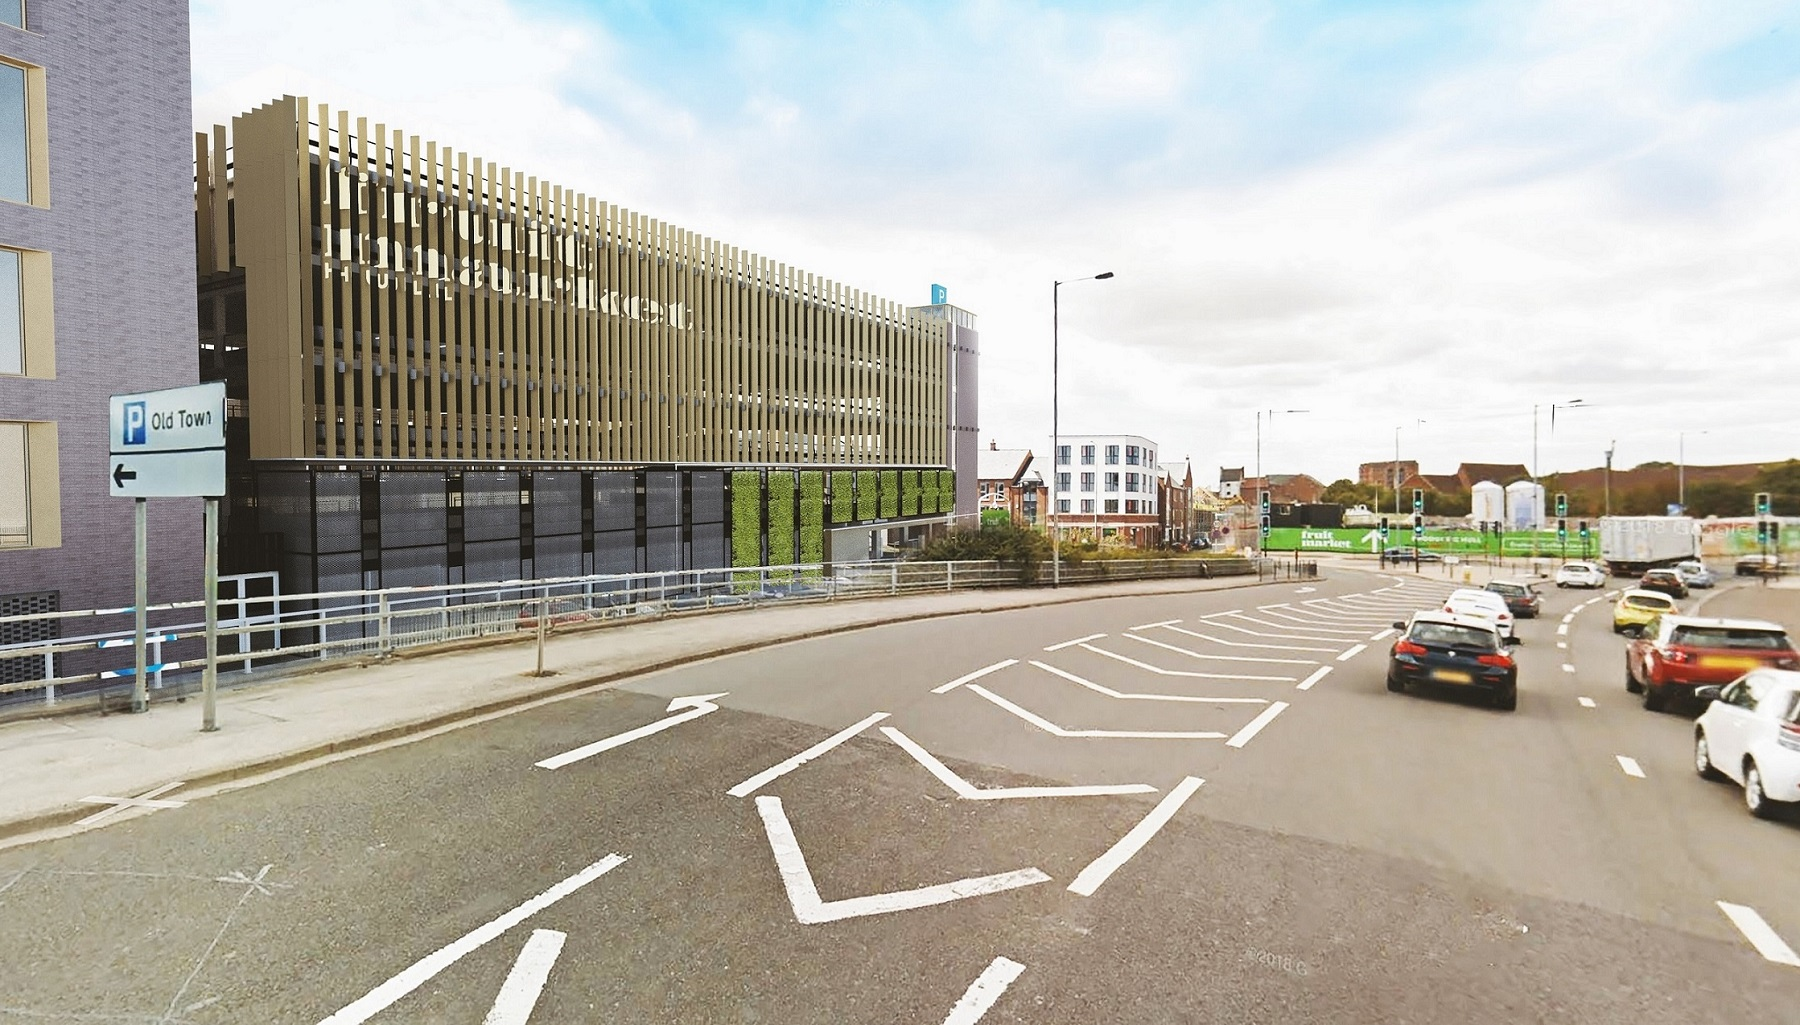 How the 350-space multi-storey car park will look